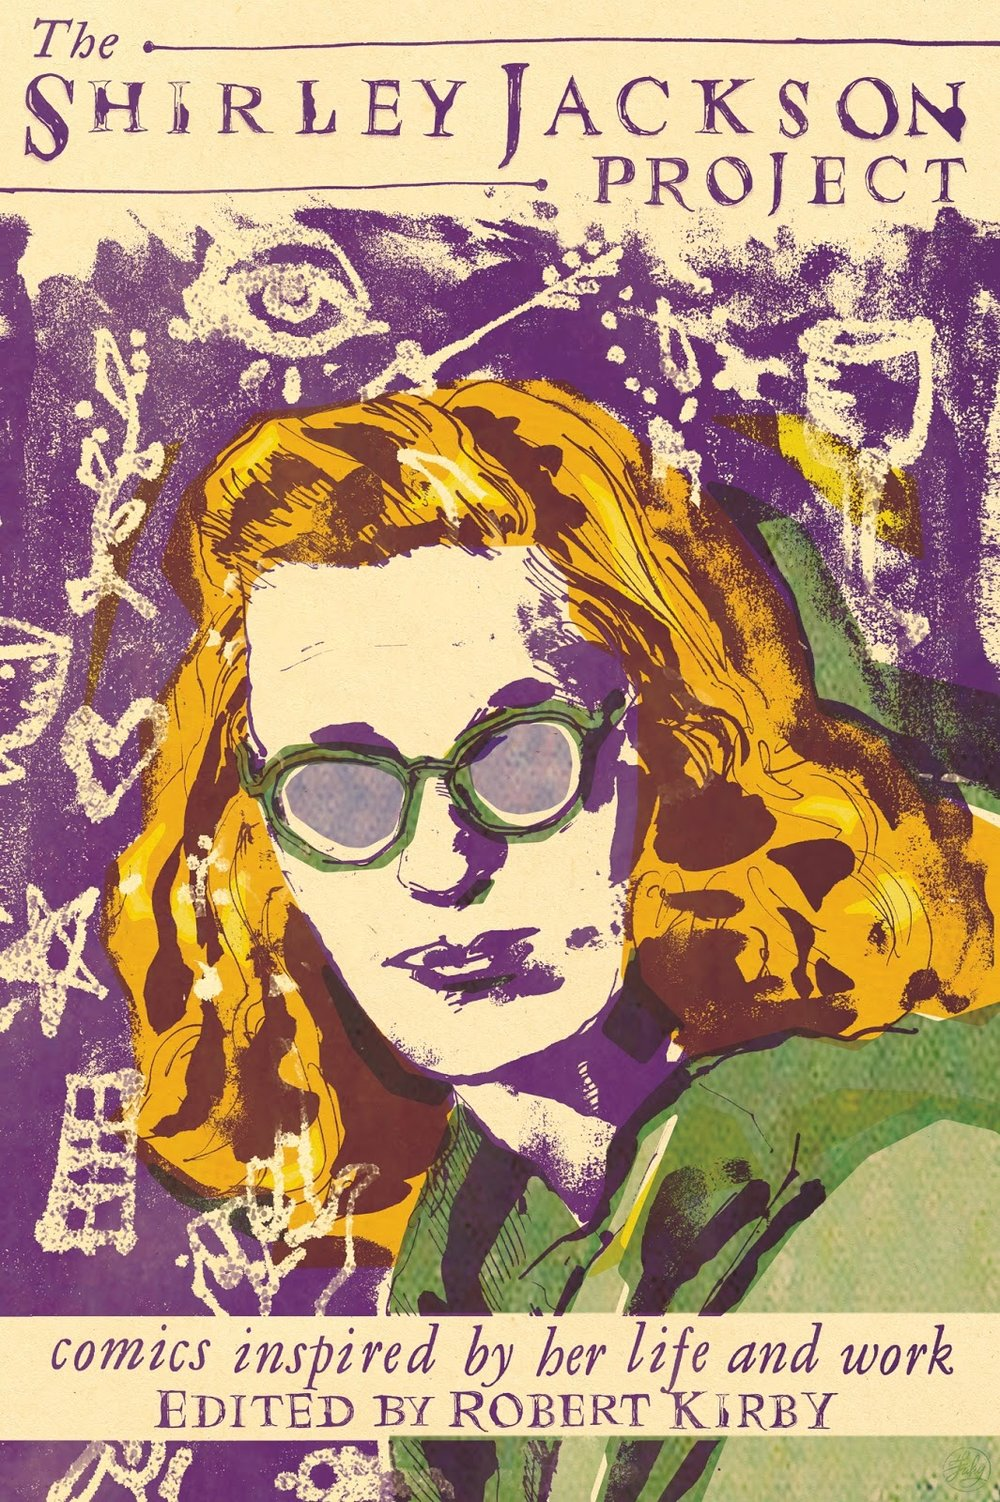 The Shirley Jackson Project: Comics Inspired by Her Life and Work  - Edited by Robert Kirby2016, Ninth Art Press